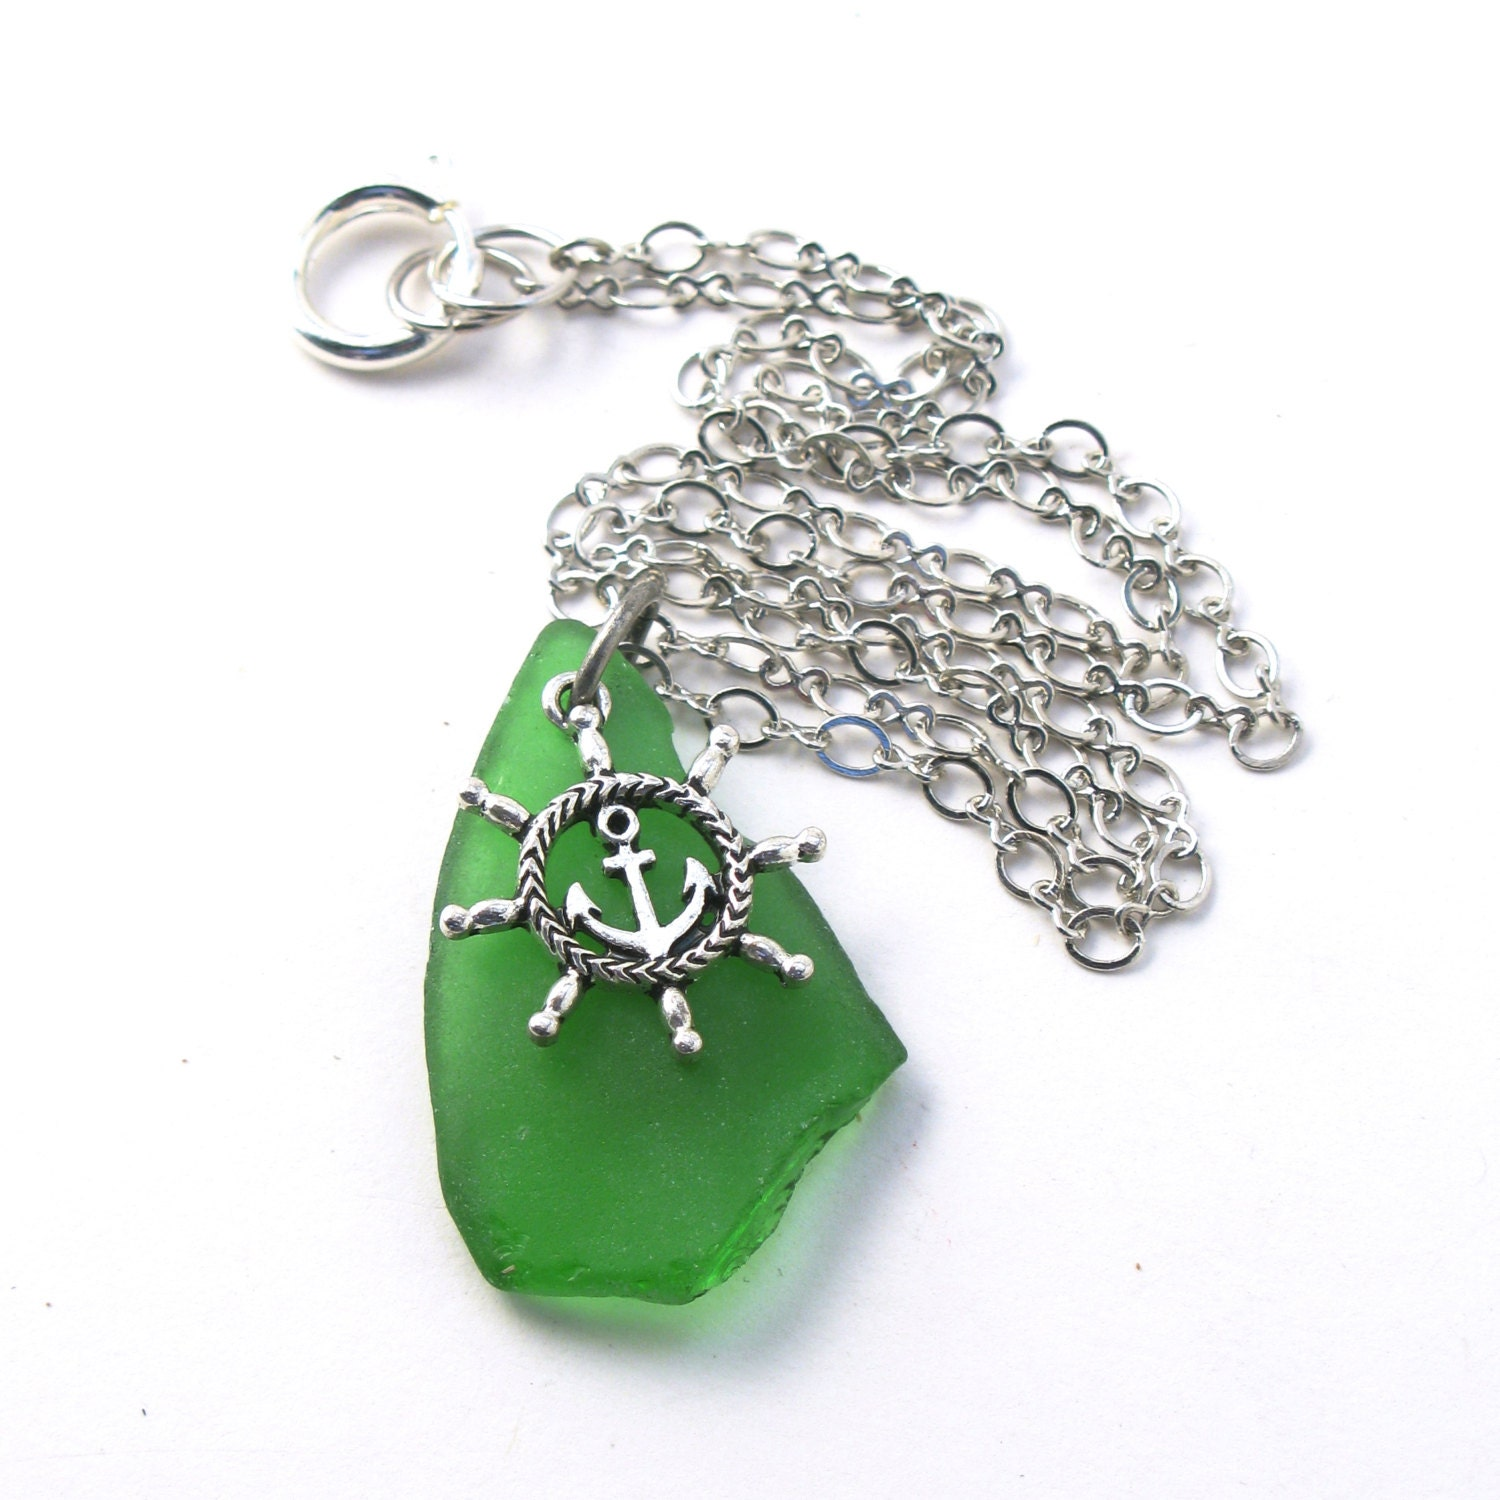 Kelly Green Sea Glass on a Silver Chain Necklace with an Anchor Charm